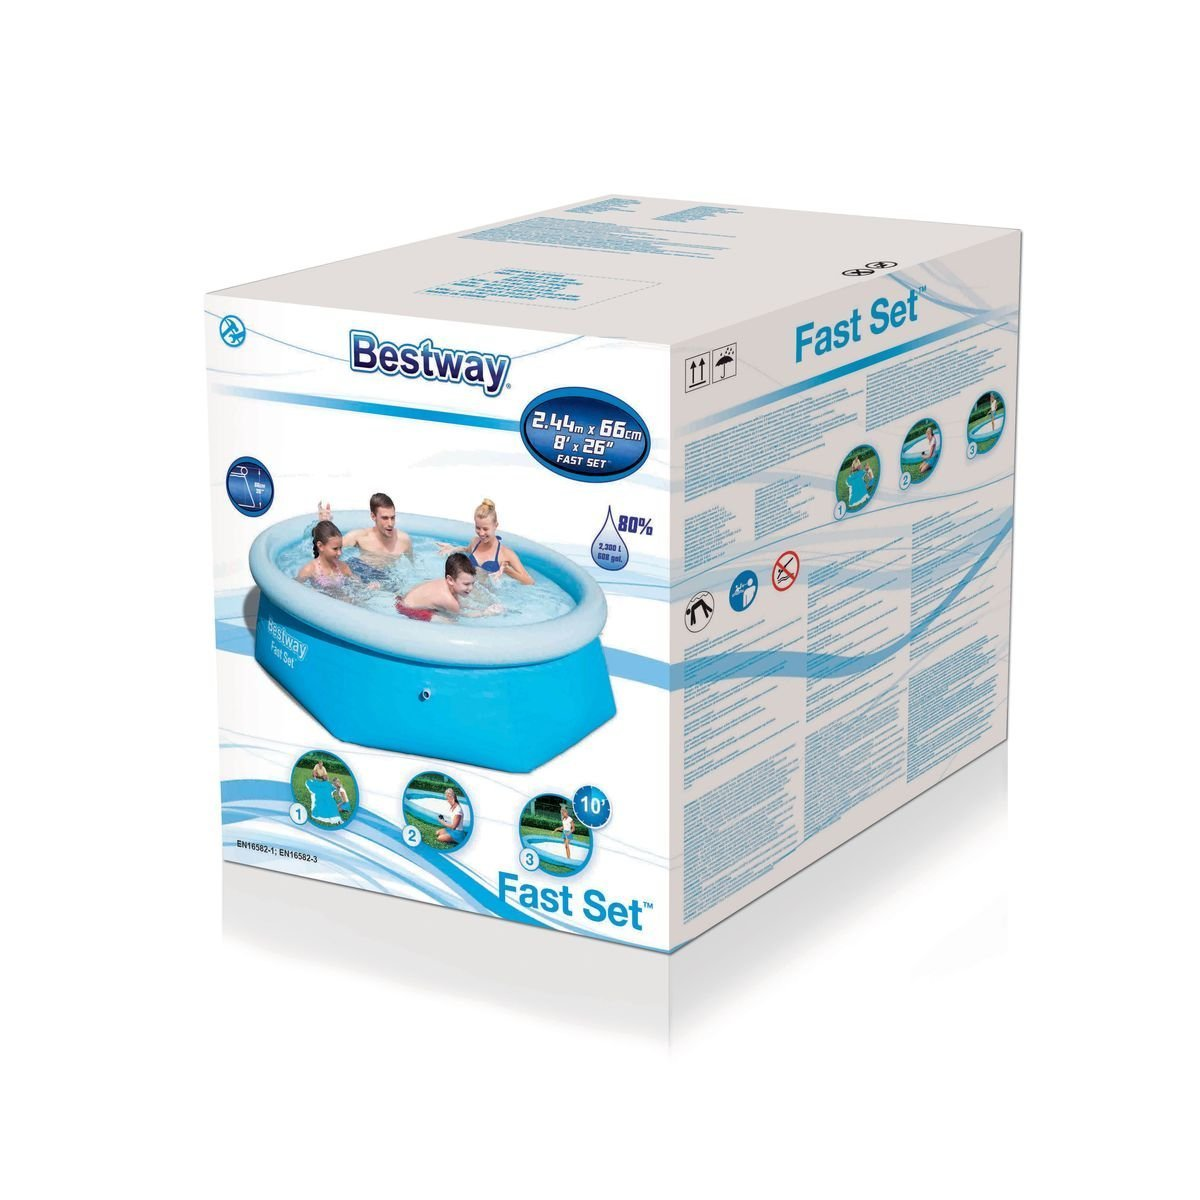 Piscina Desmontable Autoportante Bestway Fast Set 244x66 cm ...